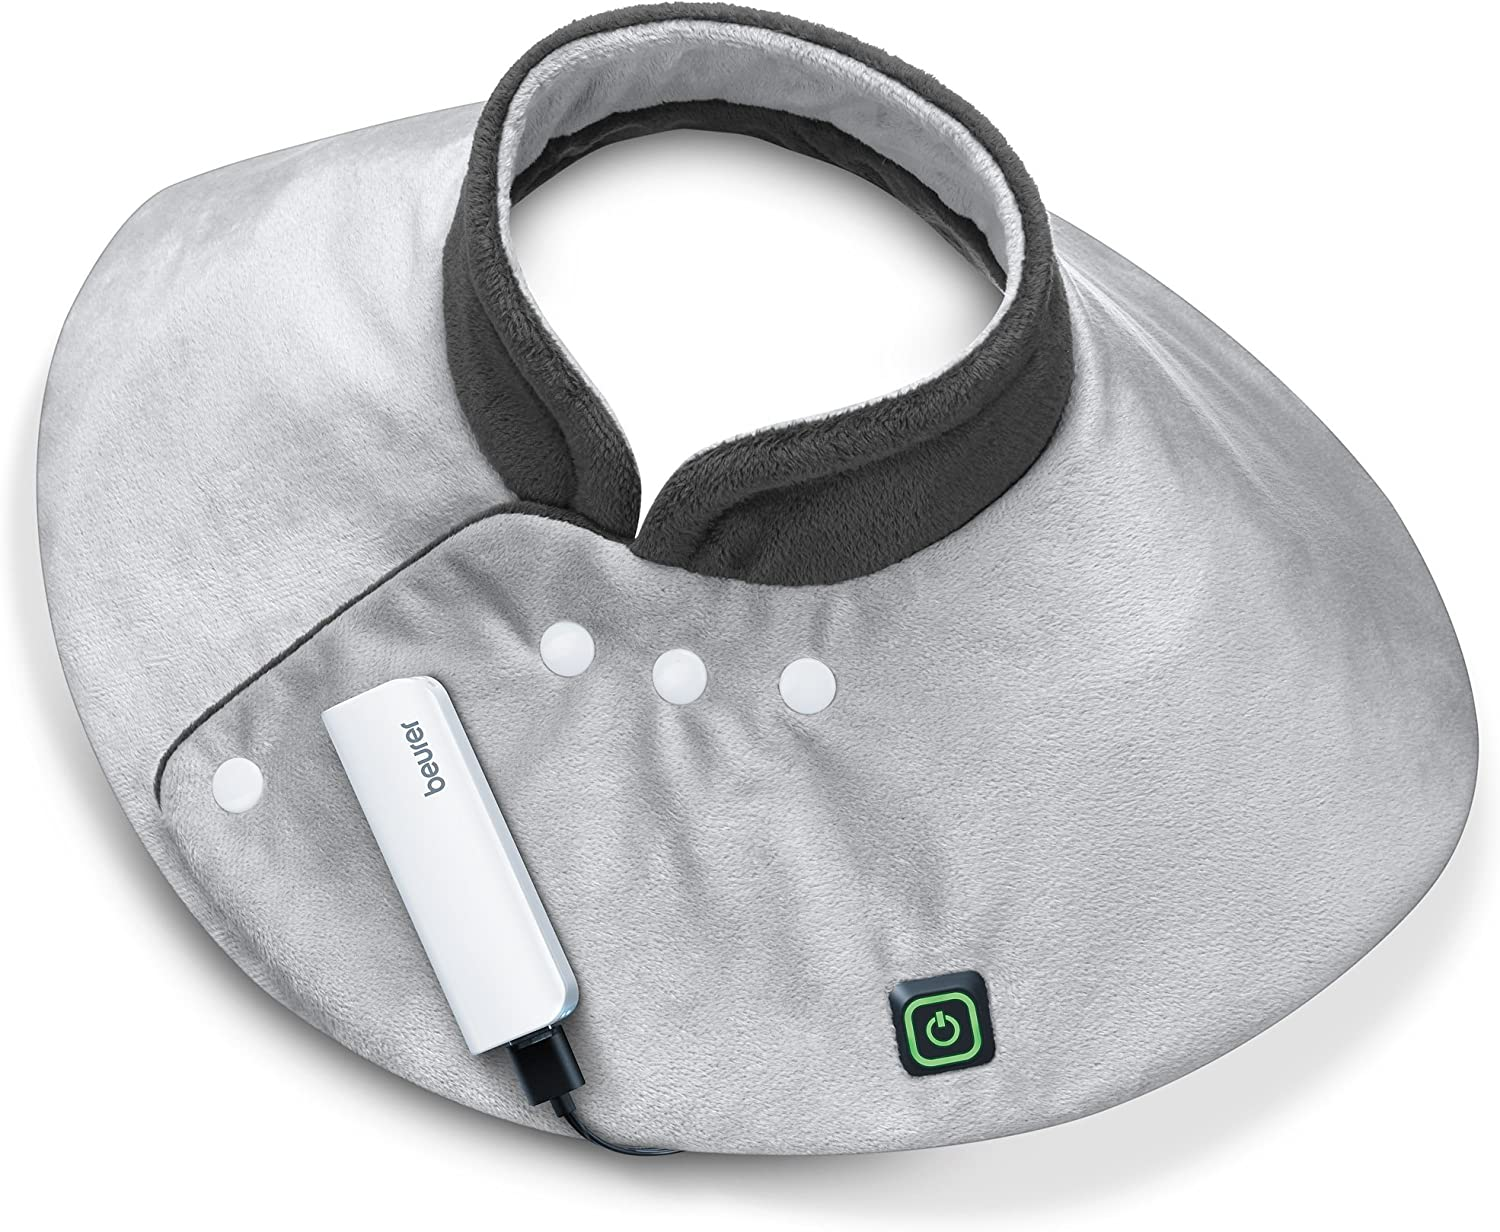 Beurer Portable Shoulder Heating Wrap, 2 Hours of Cordless Heat, Extra Soft Surface, Skin Friendly, for Indoor and Outdoor Use, HK57